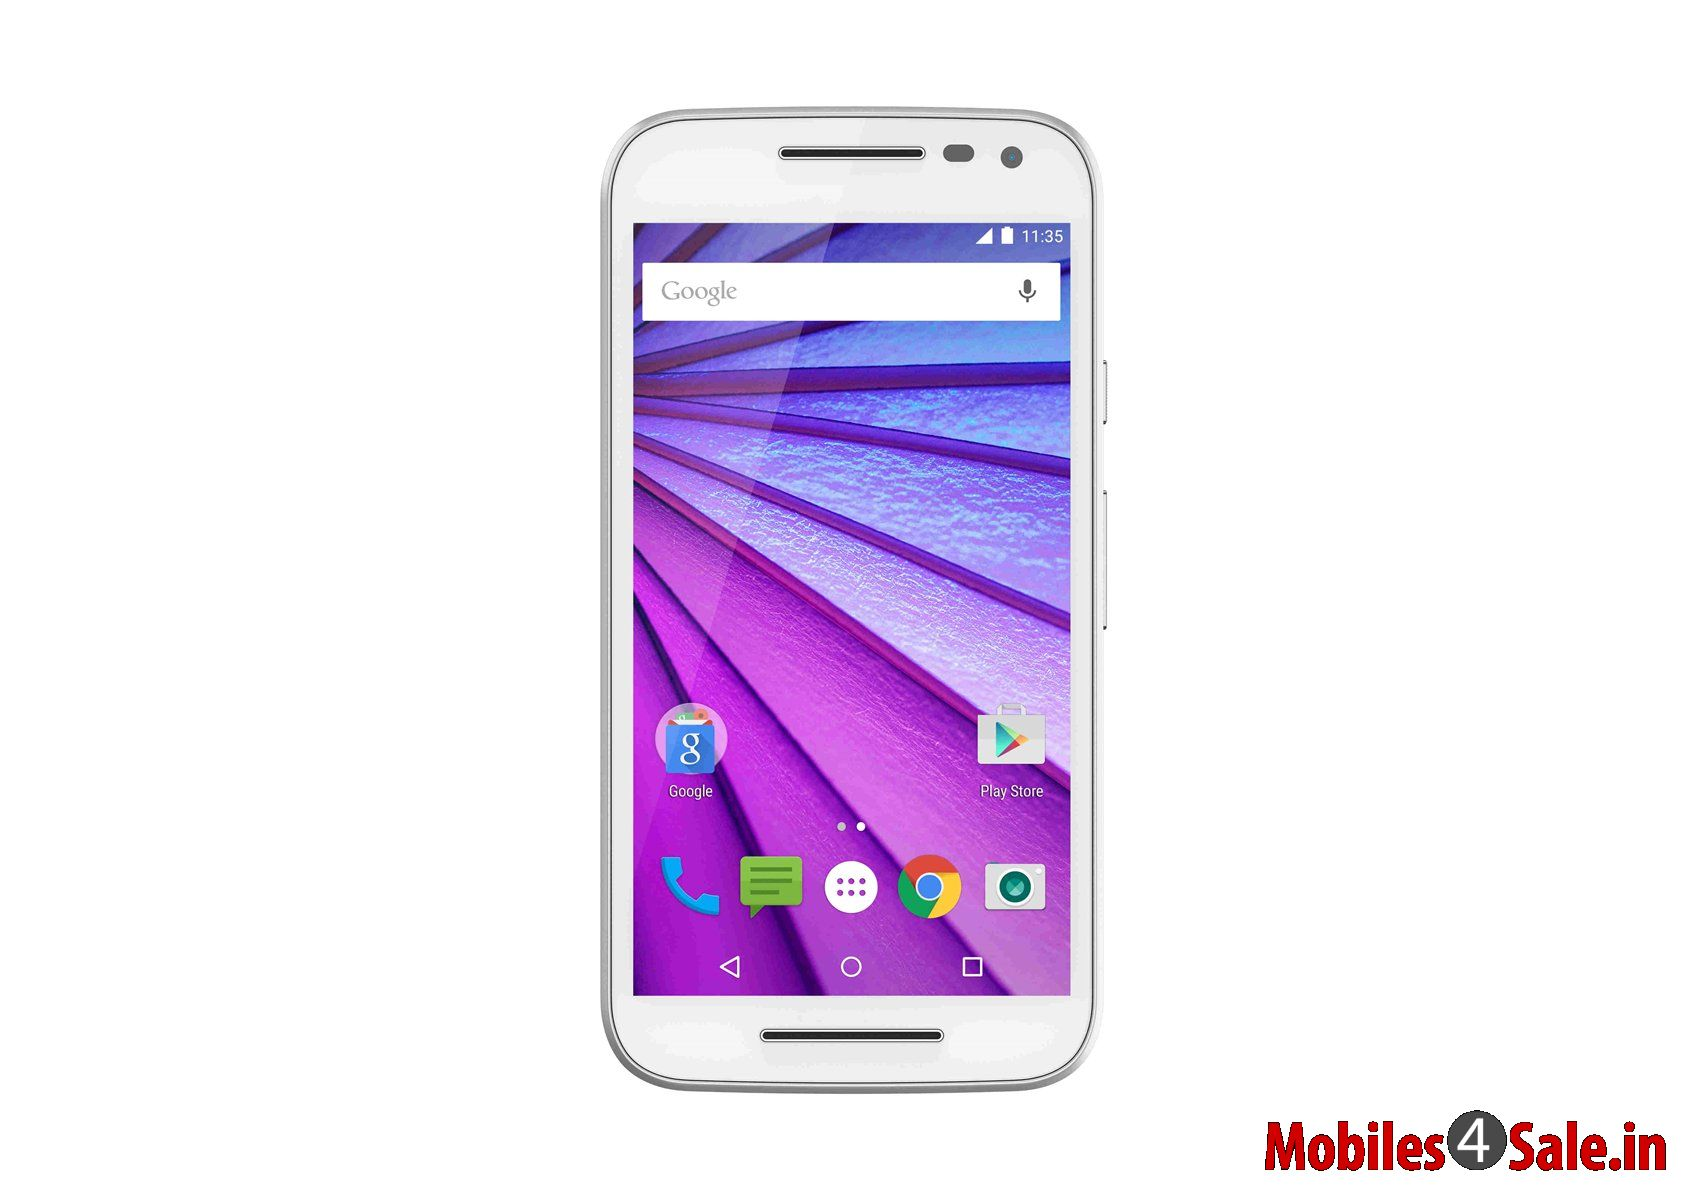 Motorola Moto G 3rd Gen Third Generation Display